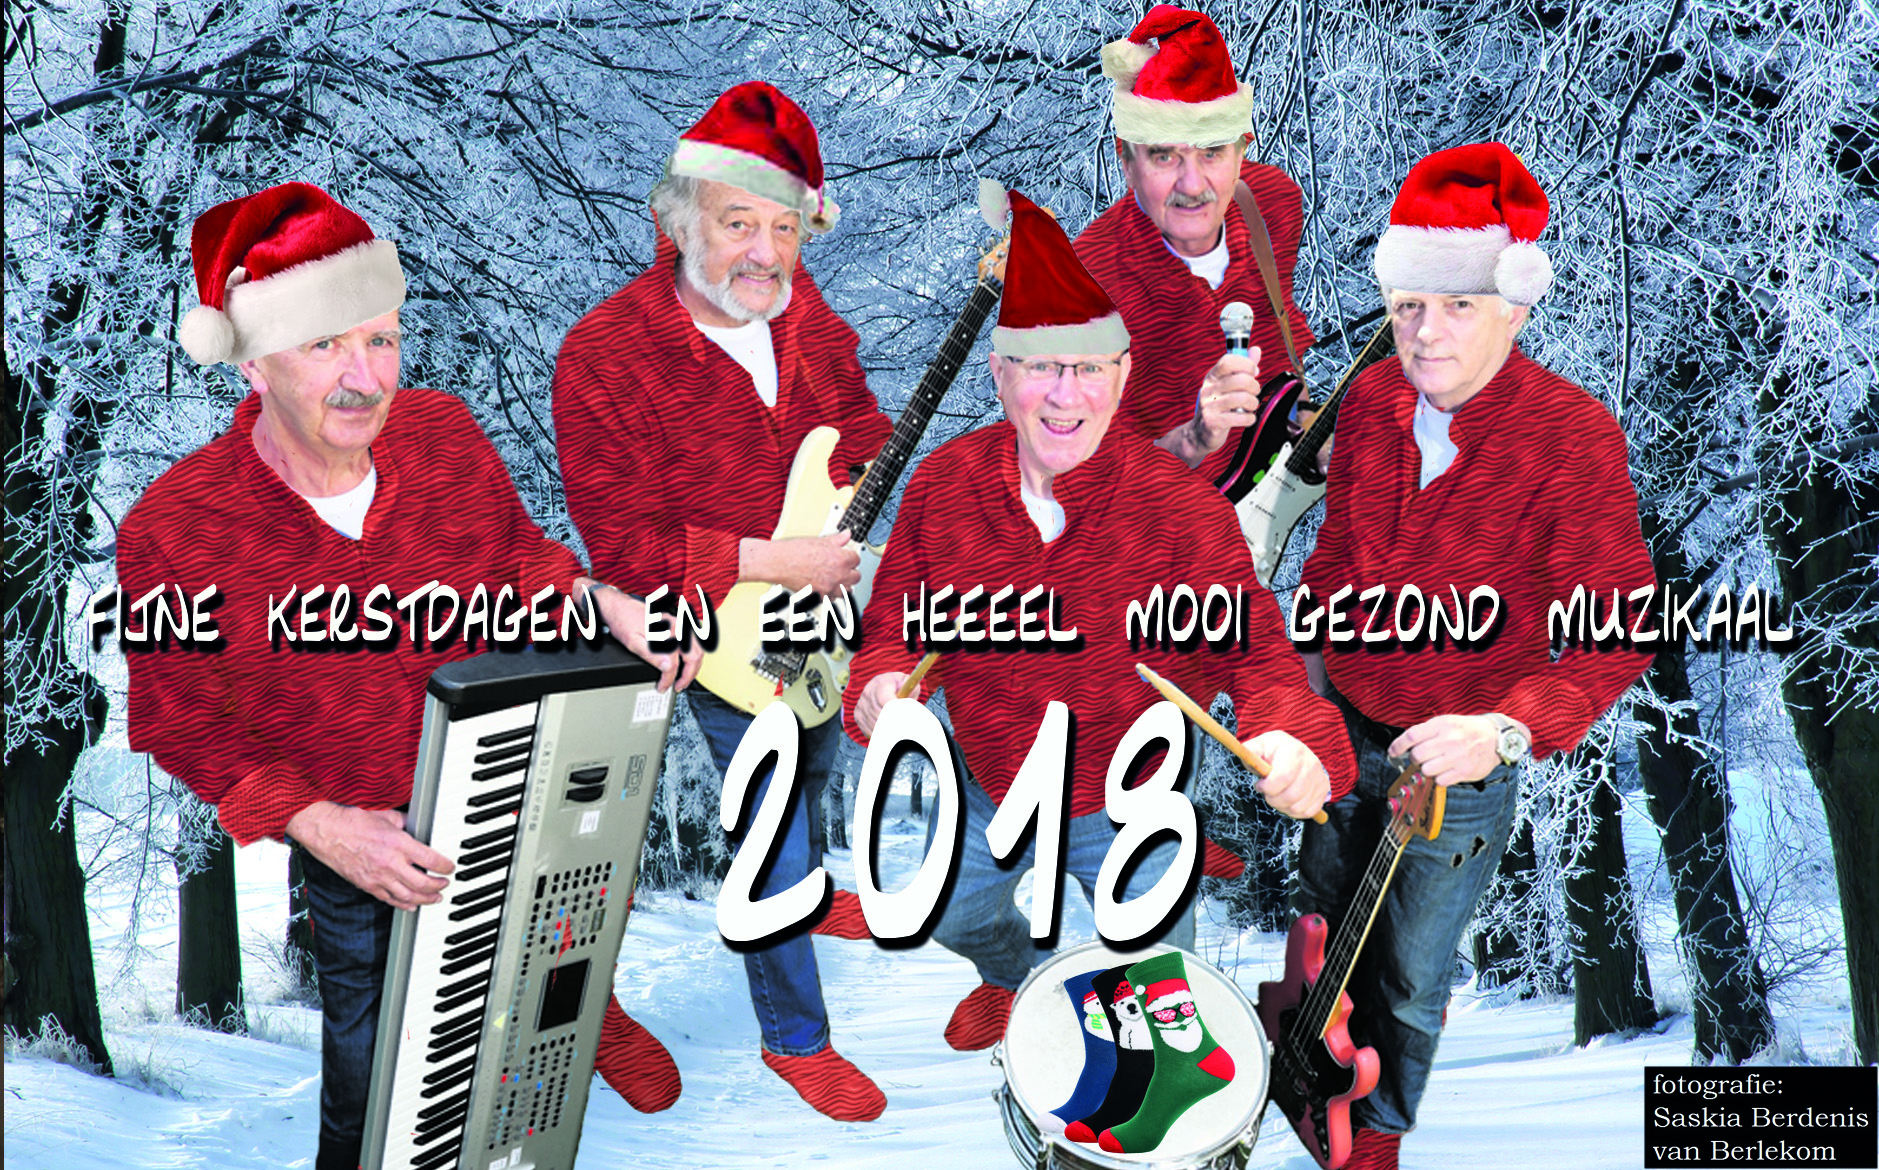 Hein, Jacques, Steef, Bert, Henk, Mary, Jaap en Eelke